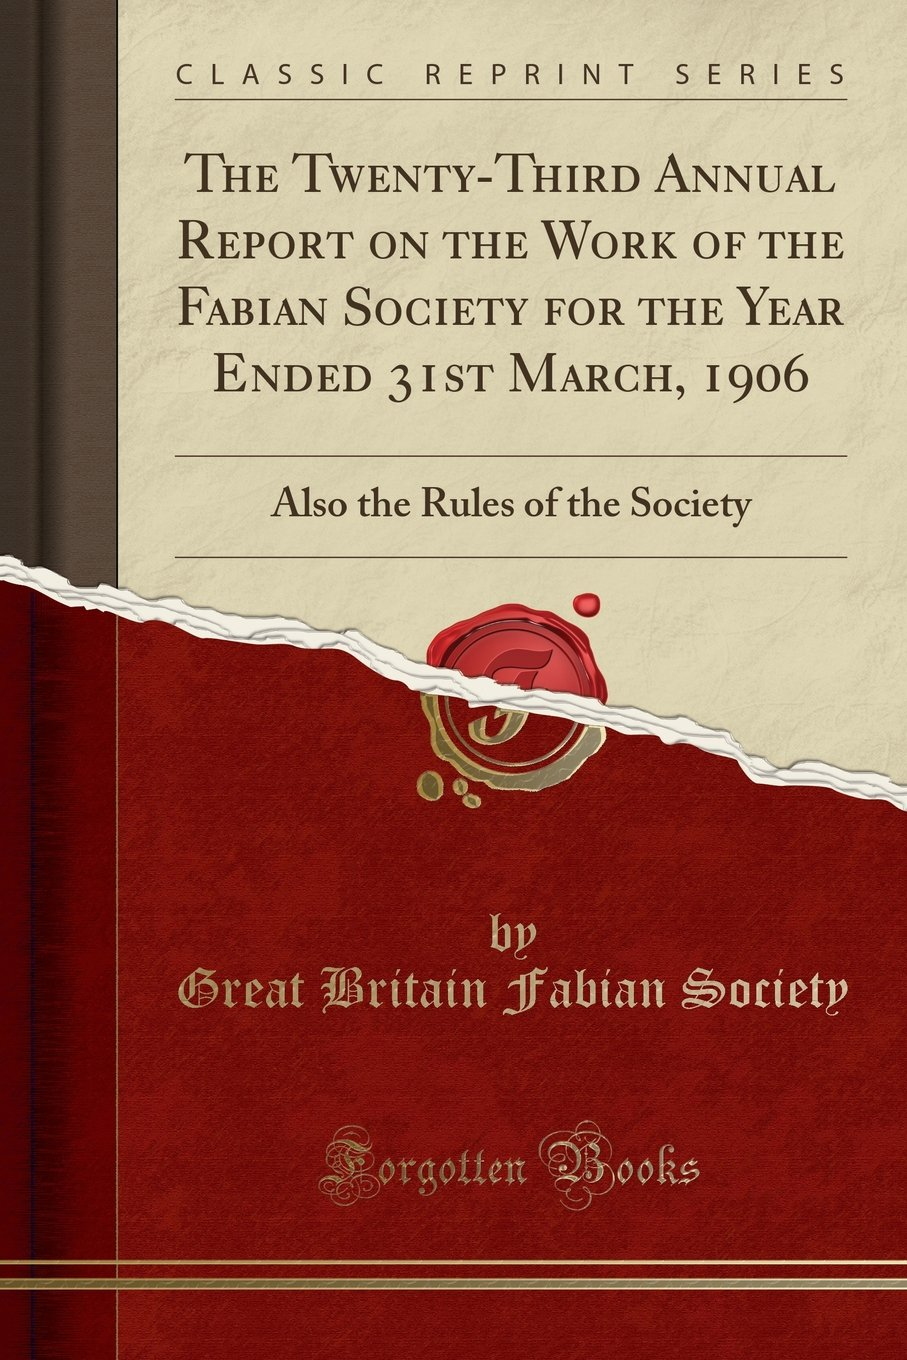 The Twenty-Third Annual Report on the Work of the Fabian Society for the Year Ended 31st March, 1906: Also the Rules of the Society (Classic Reprint) ebook